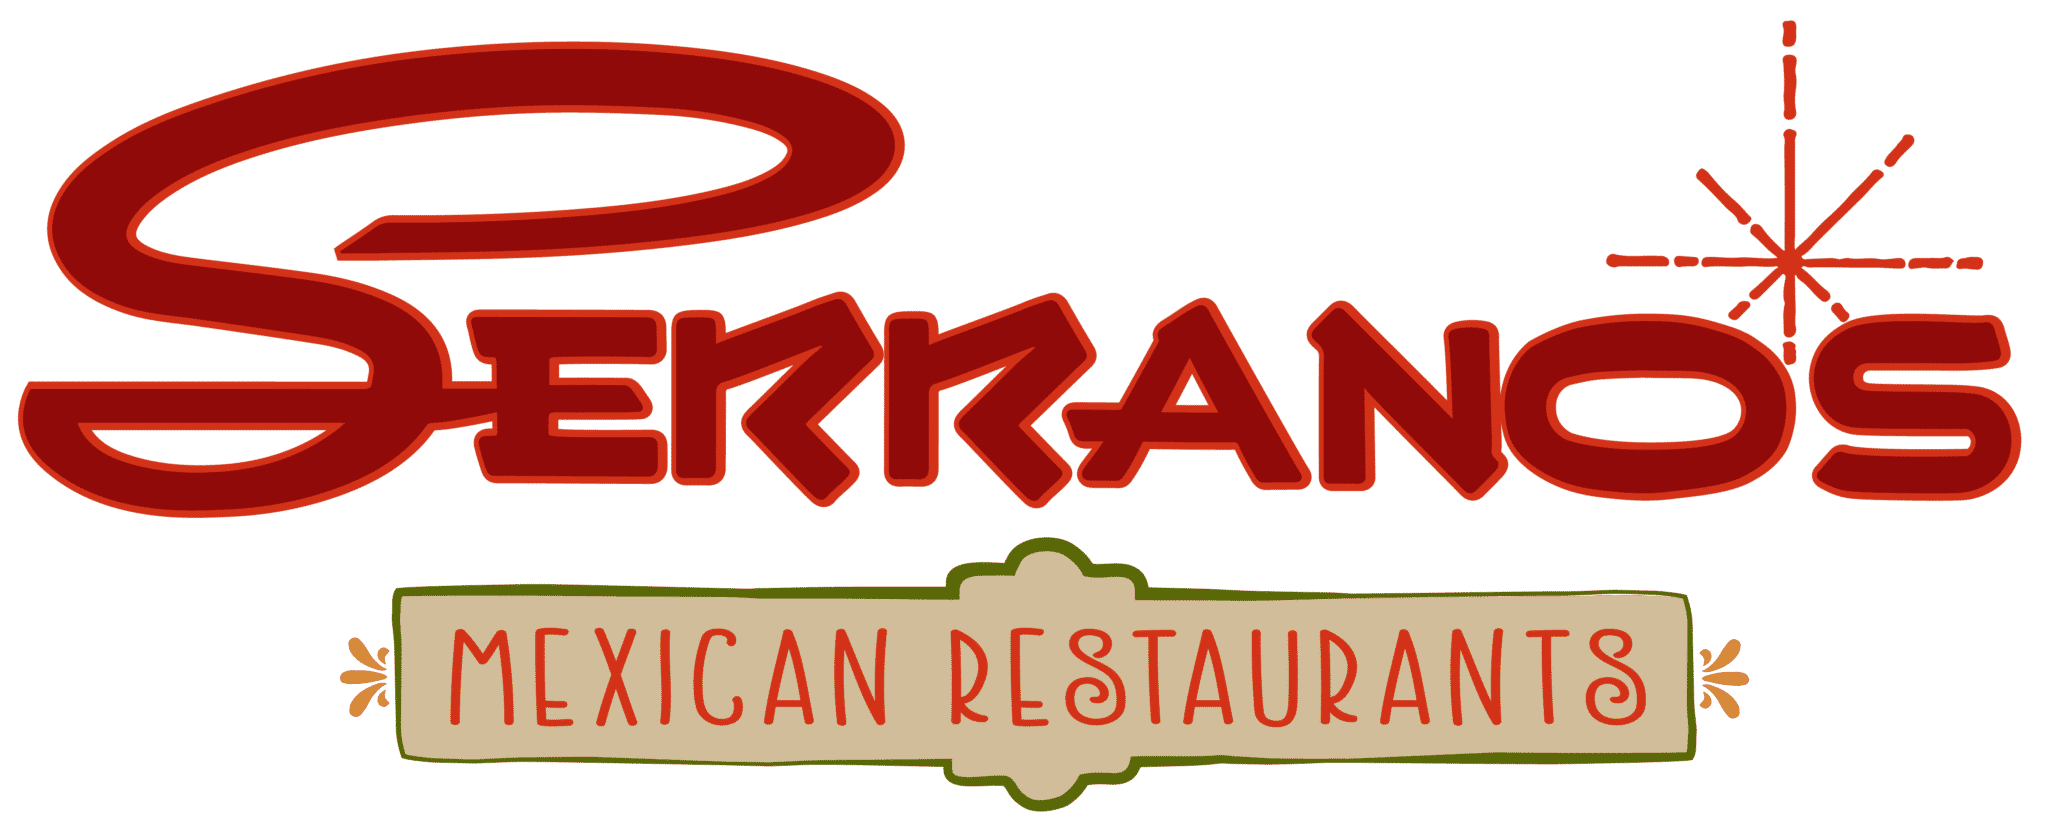 Serrano's Mexican Restaurants | Arizona